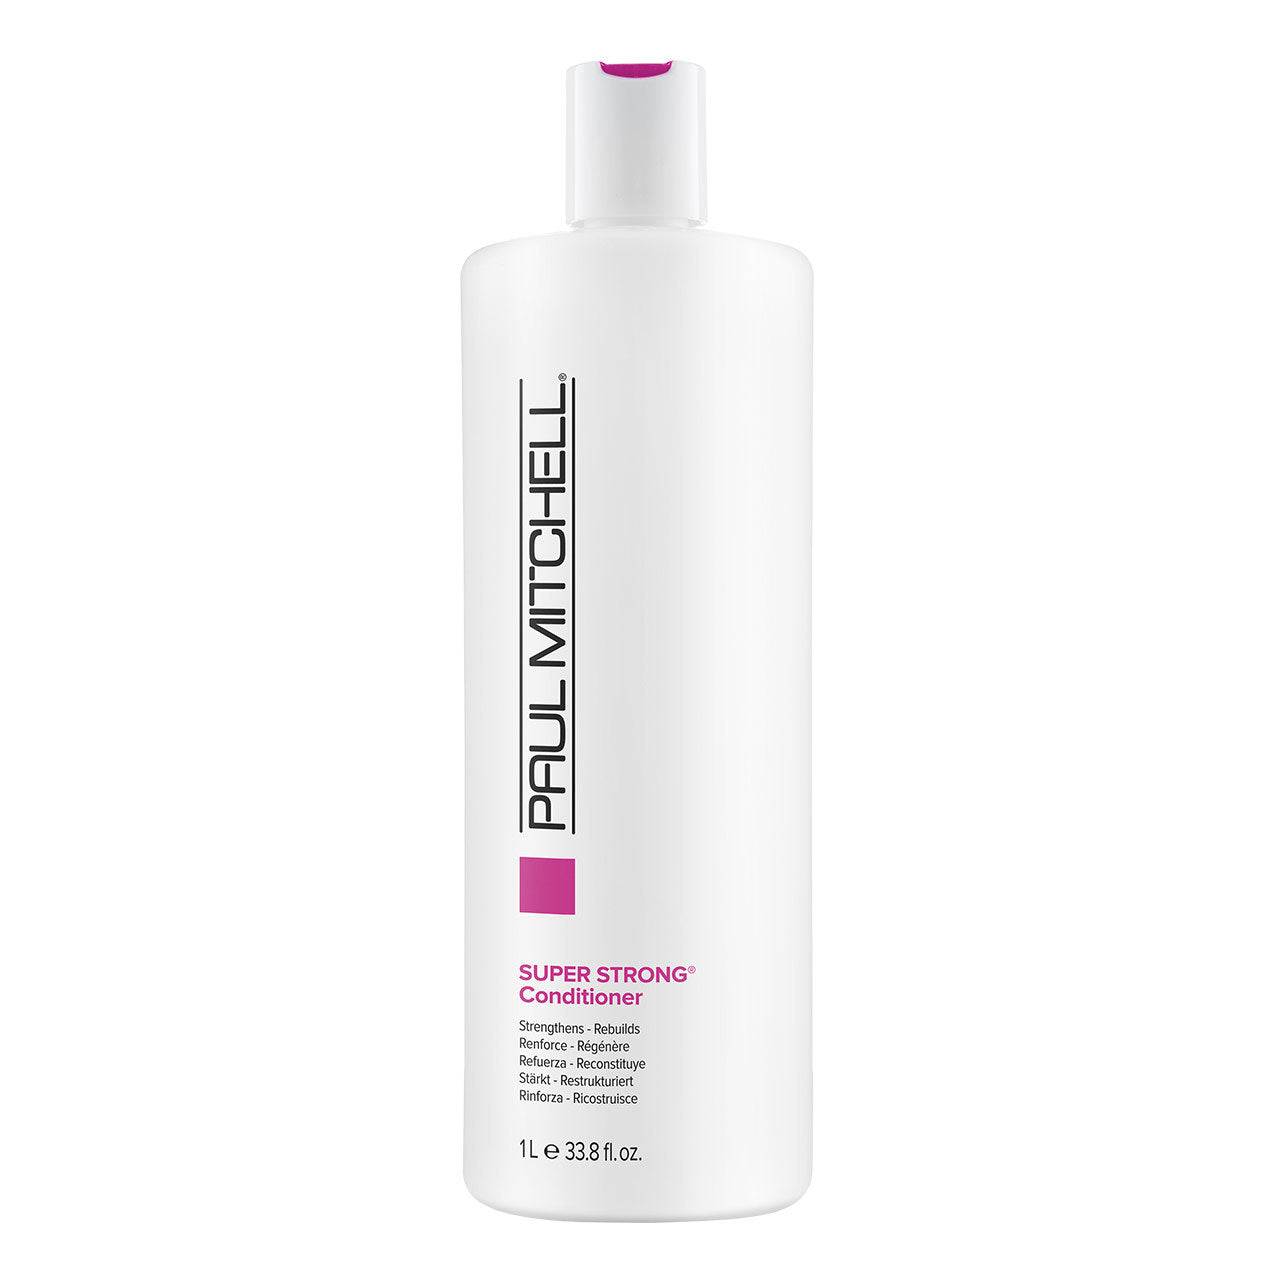 Paul Mitchell Super Strong Conditioner 1 Litre